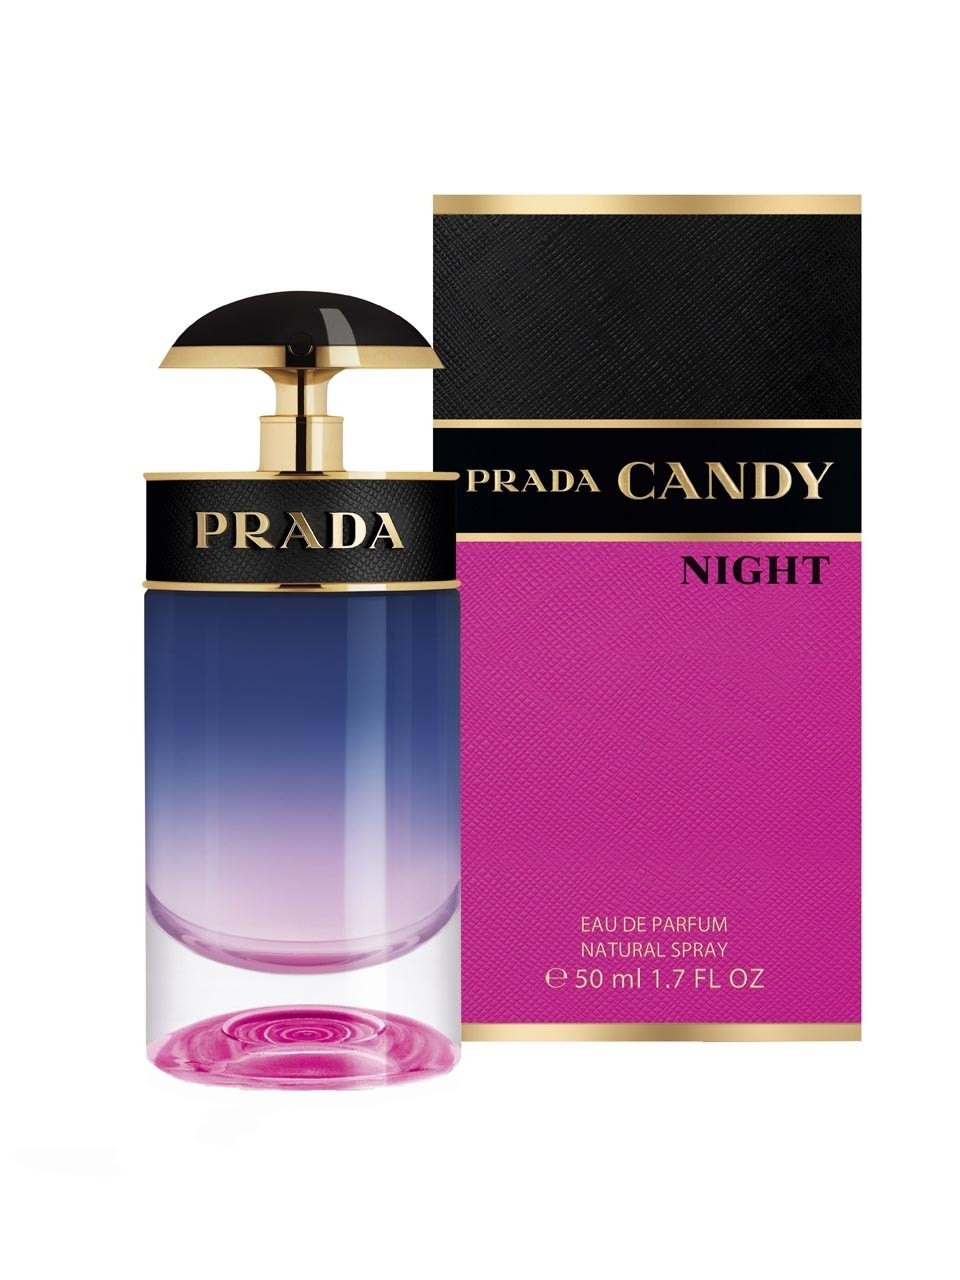 Prada Candy Night New Fragrances